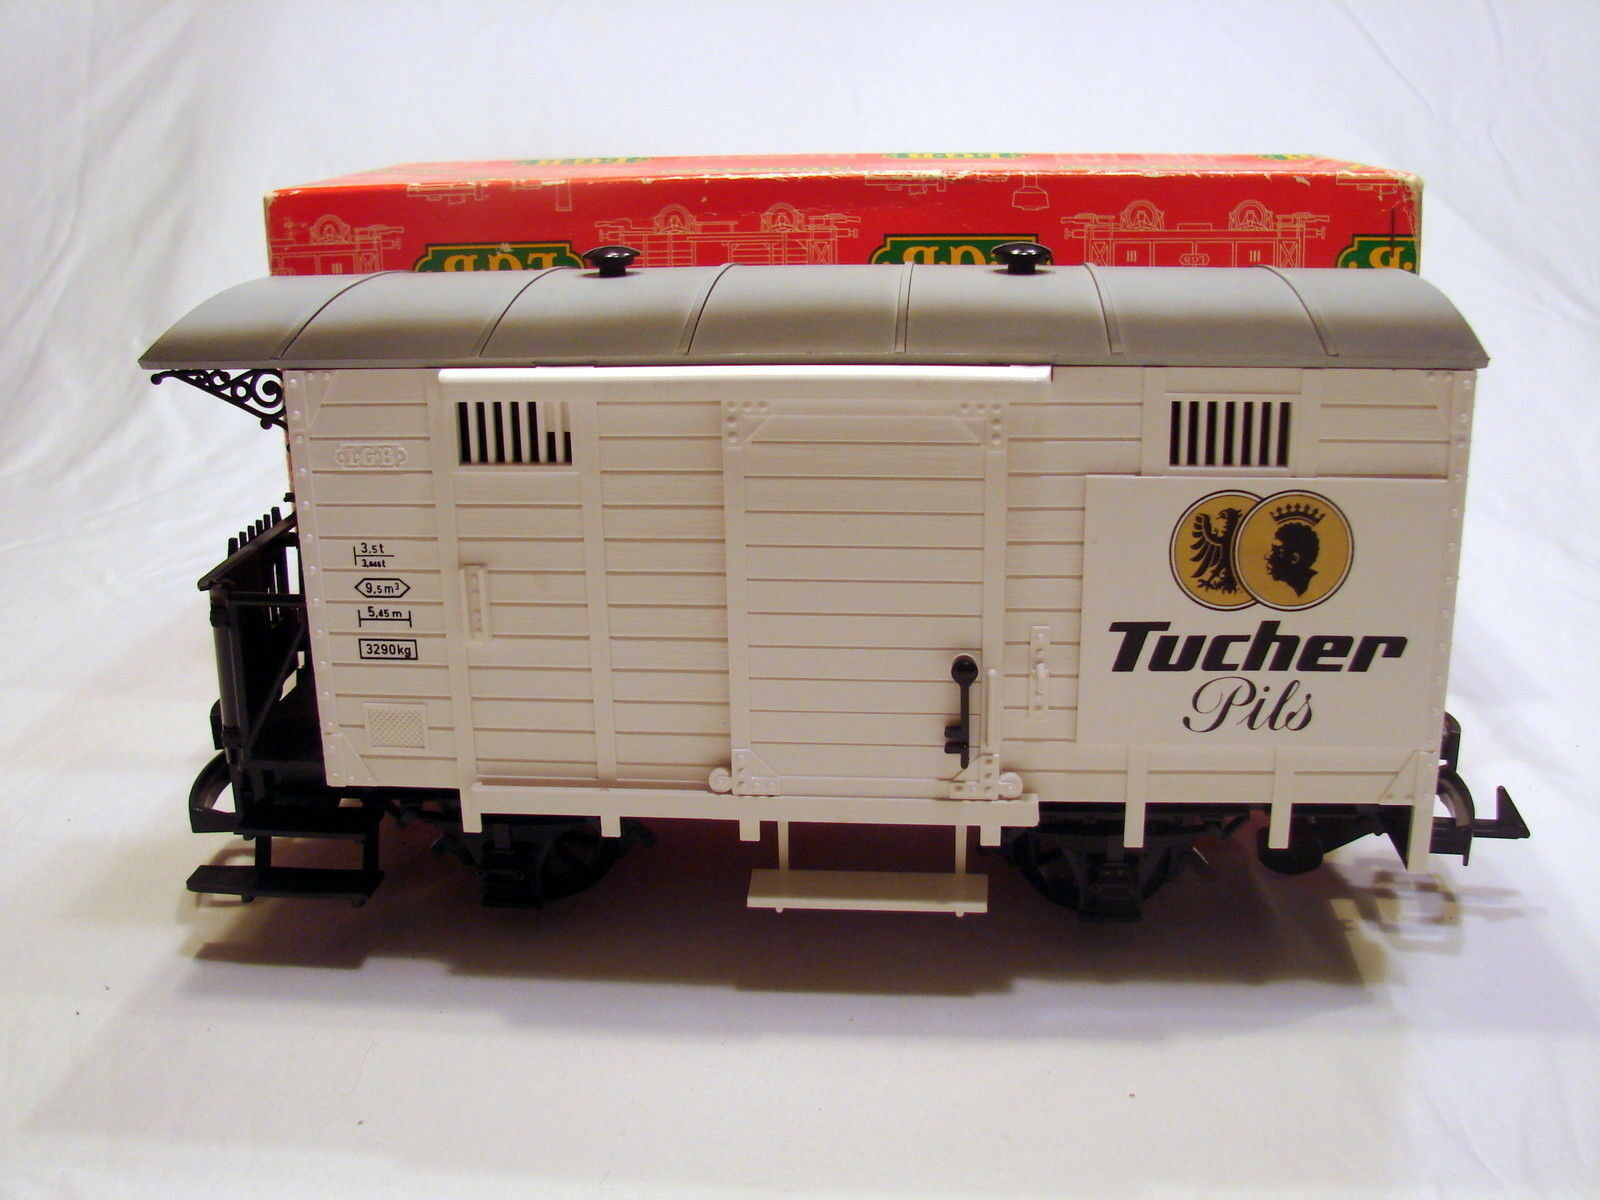 LGB 4032 Tucher Pils Bierwagen Box Car With Brakesman Platform NIB Old Style Box